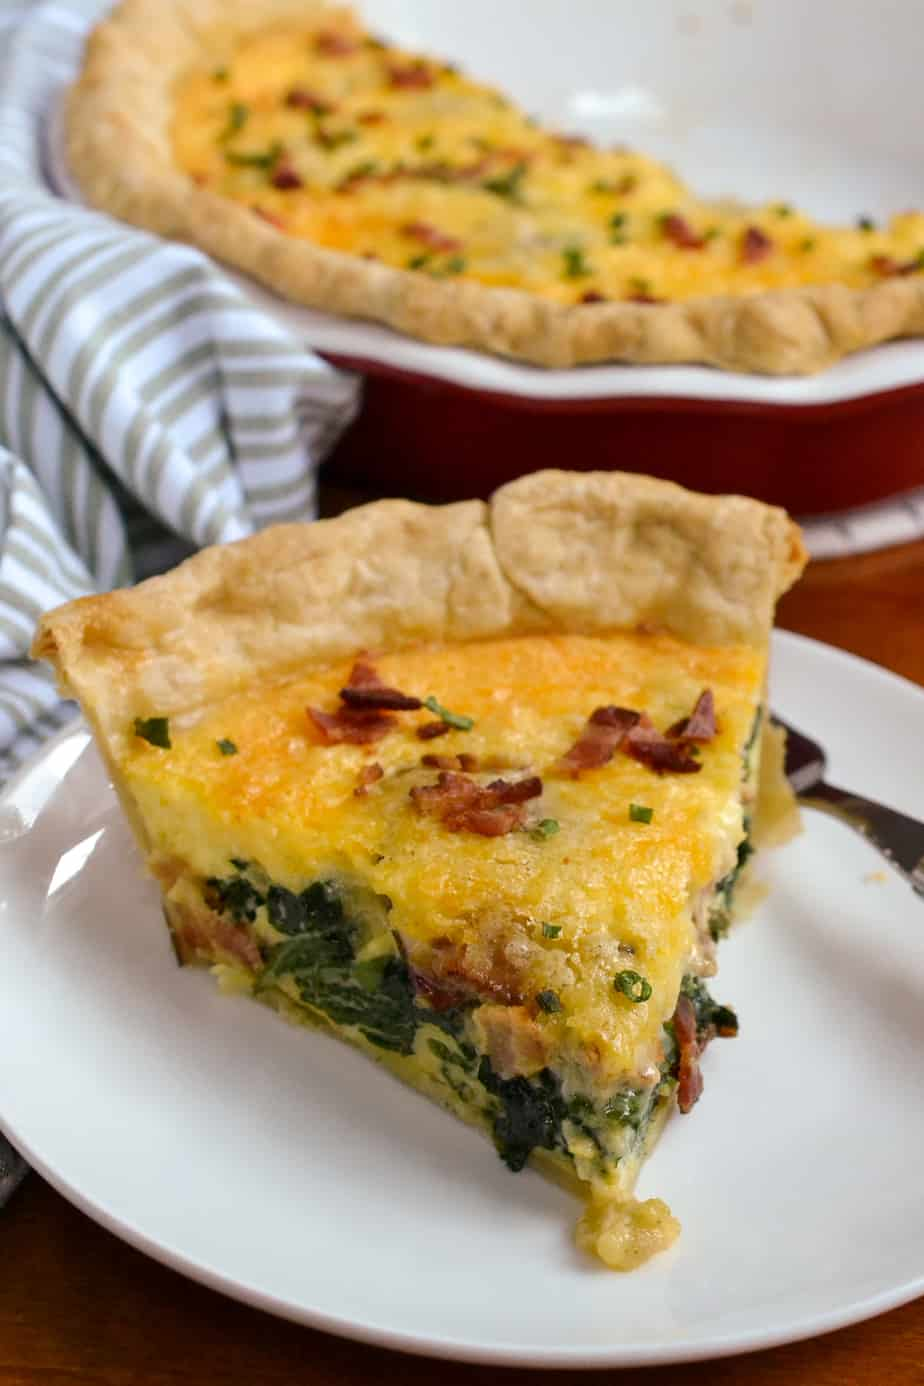 A slice of homemade spinach quiche.